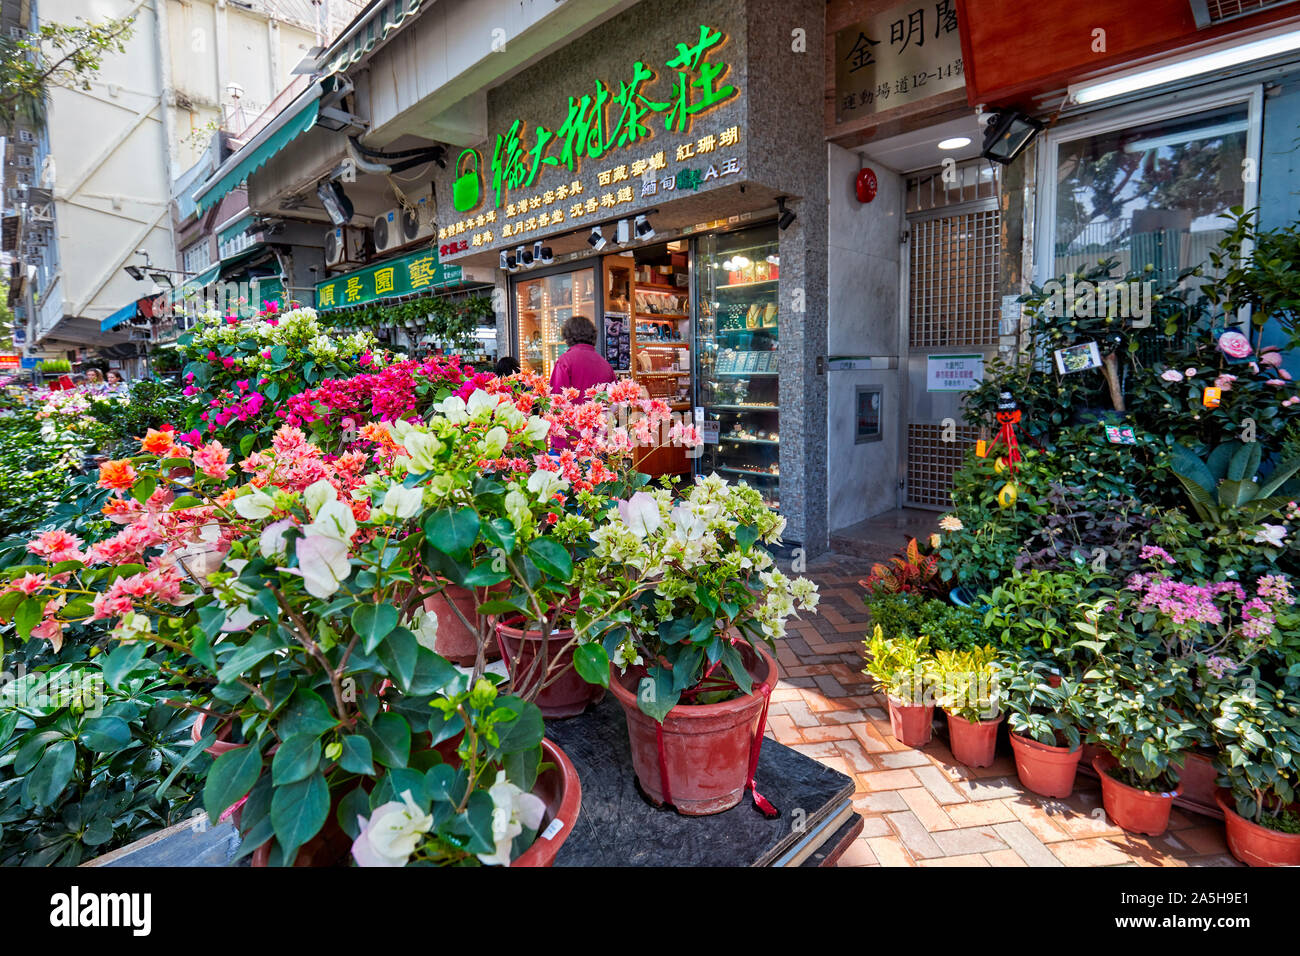 Potted Houseplants For Sale At Flower Market Road Kowloon Hong